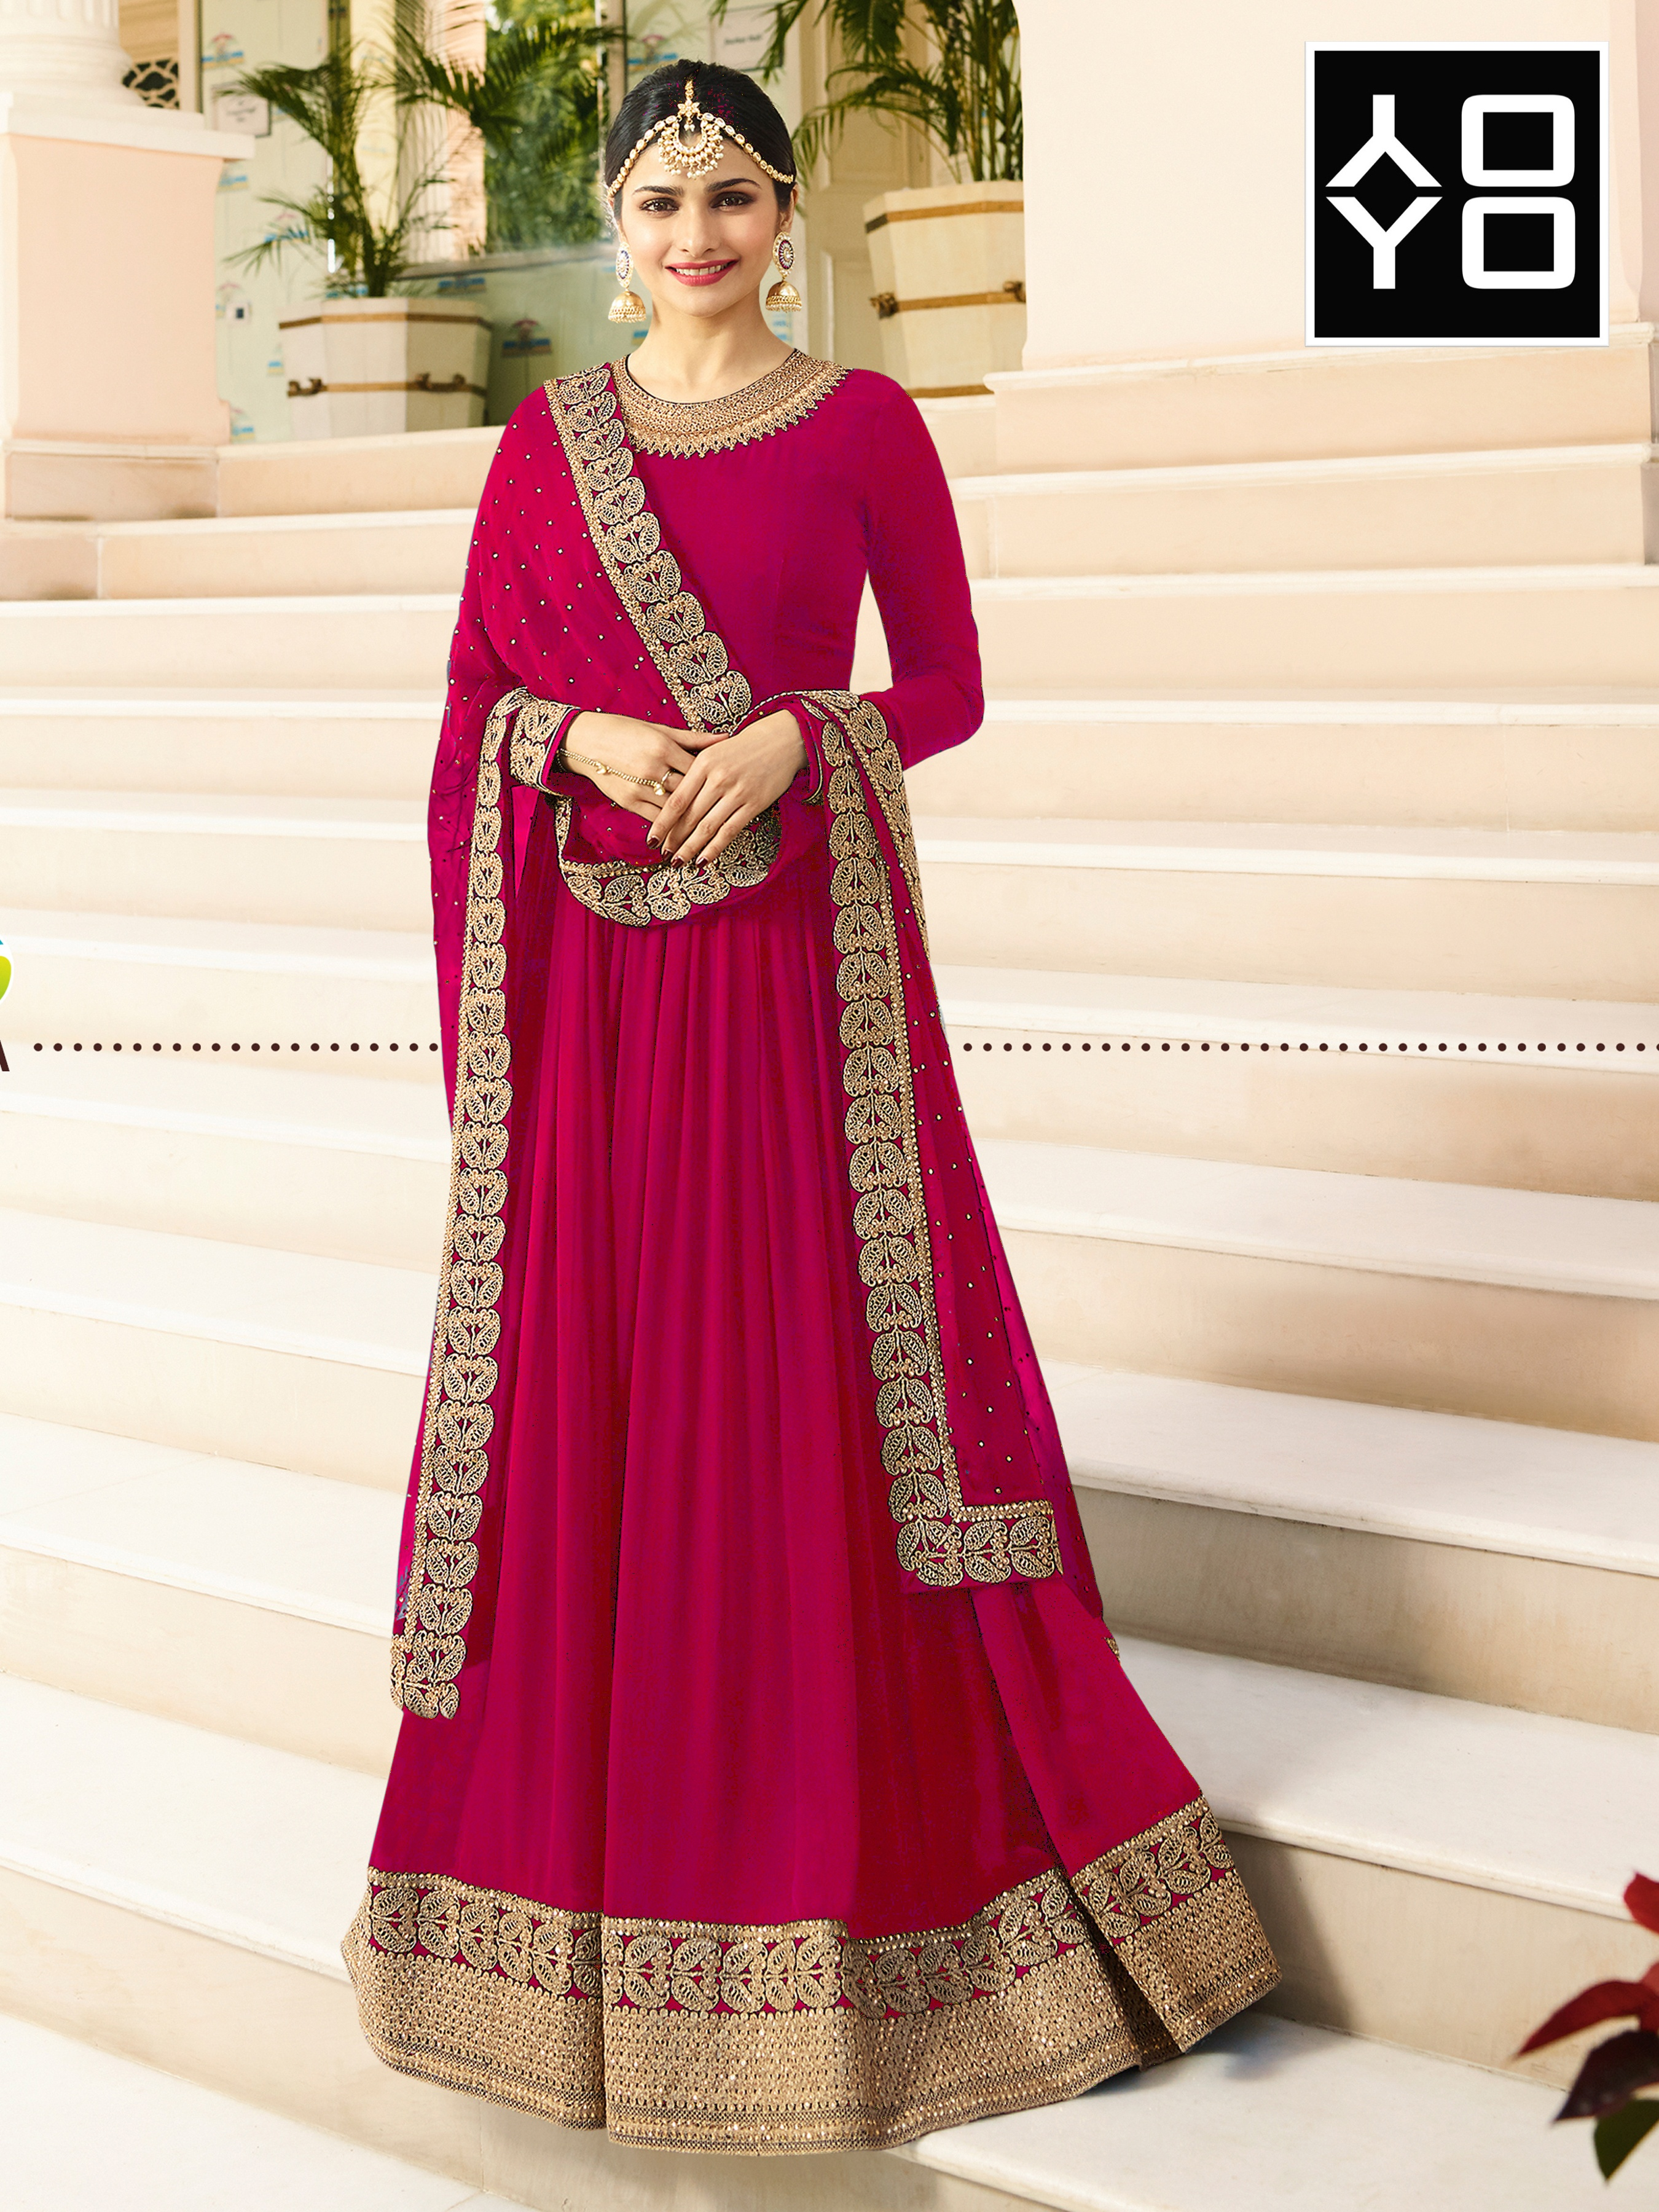 9eb3f90904 Check out Latest collection of Eid dresses online in India at the best price .